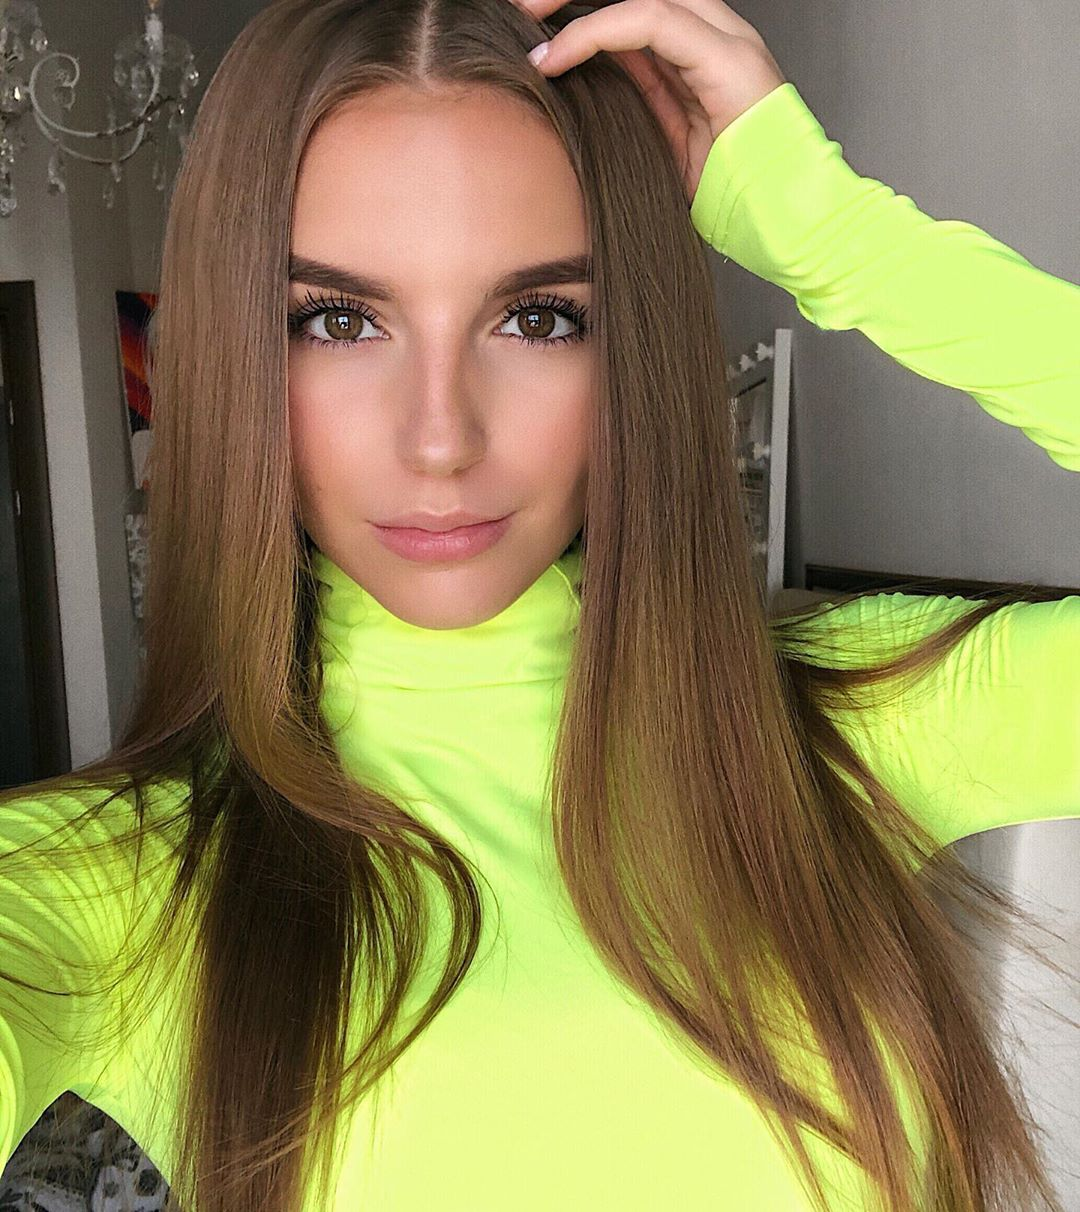 russian girl to marry